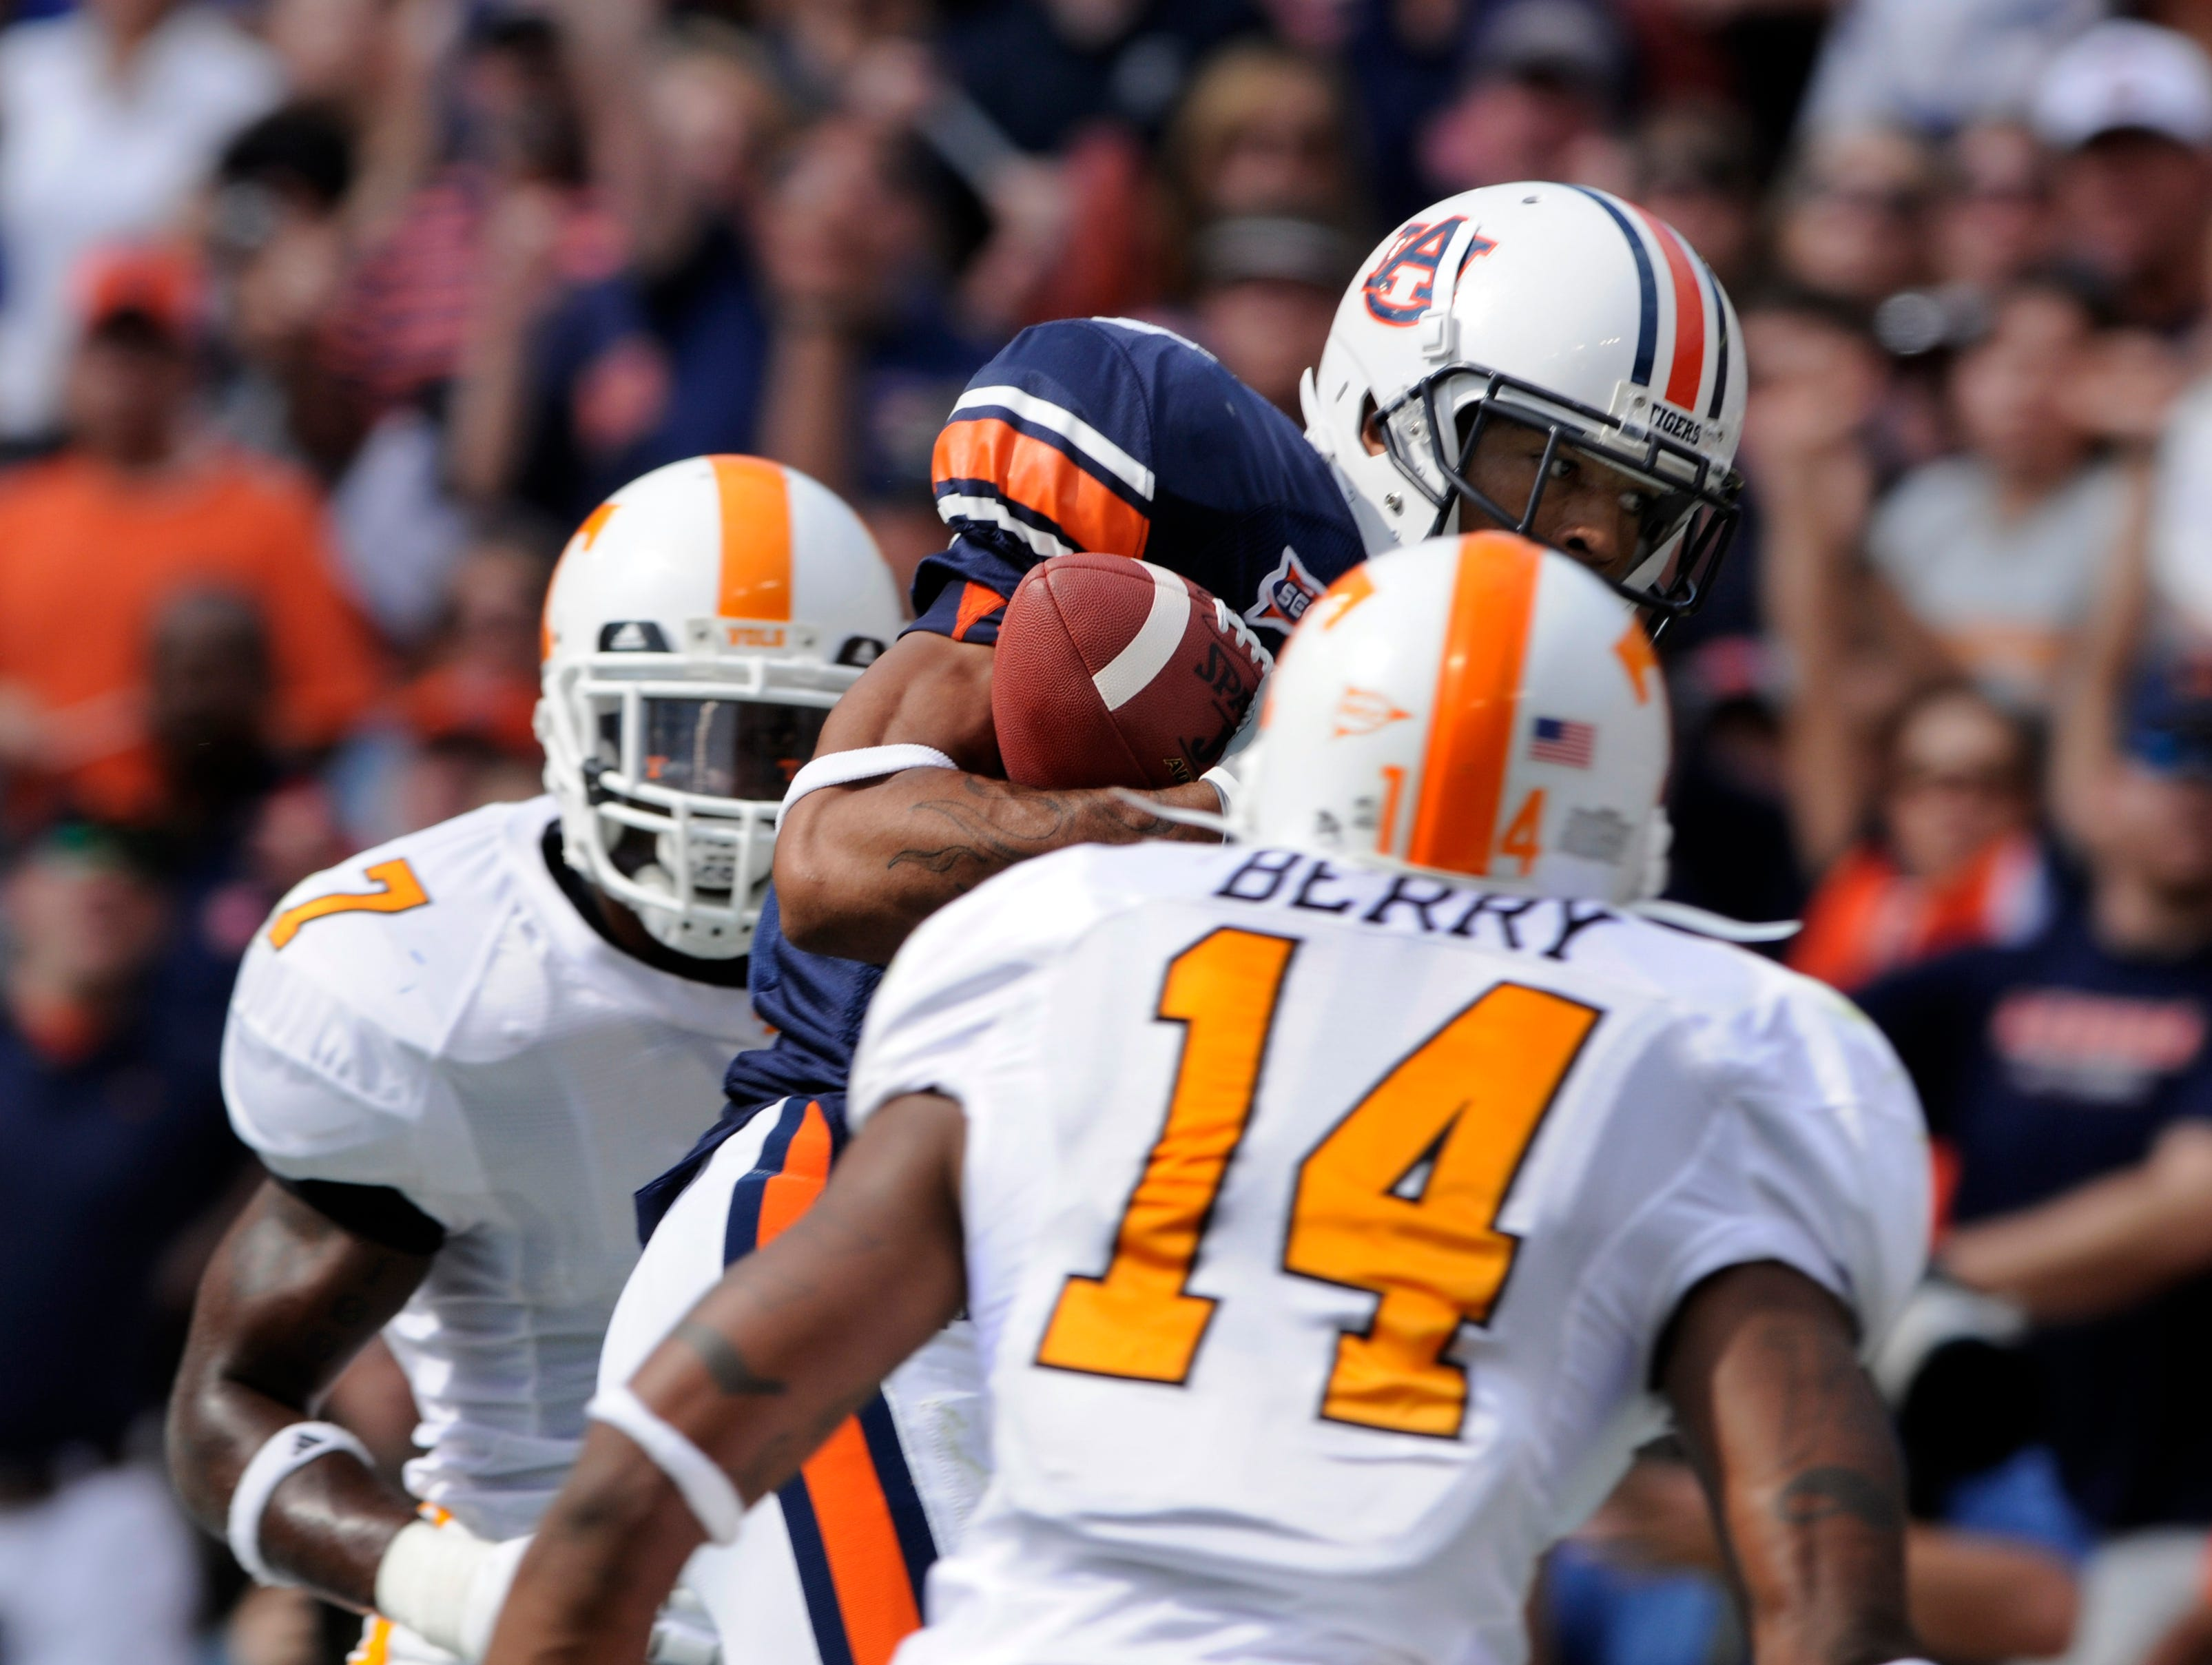 MICHAEL PATRICK/KNOXVILLE NEWS SENTINEL - Saturday, September 27, 2008  Auburn wide receiver Robert Dunn (3) catches an 18-yard touchdown pass between Tennessee defensive back Demetrice Morley (7) and safety Eric Berry (14) Saturday at Jordan-Hare Stadium in Alabama. Auburn won the game 14-12, dropping Tennessee to 1-3 for the season.